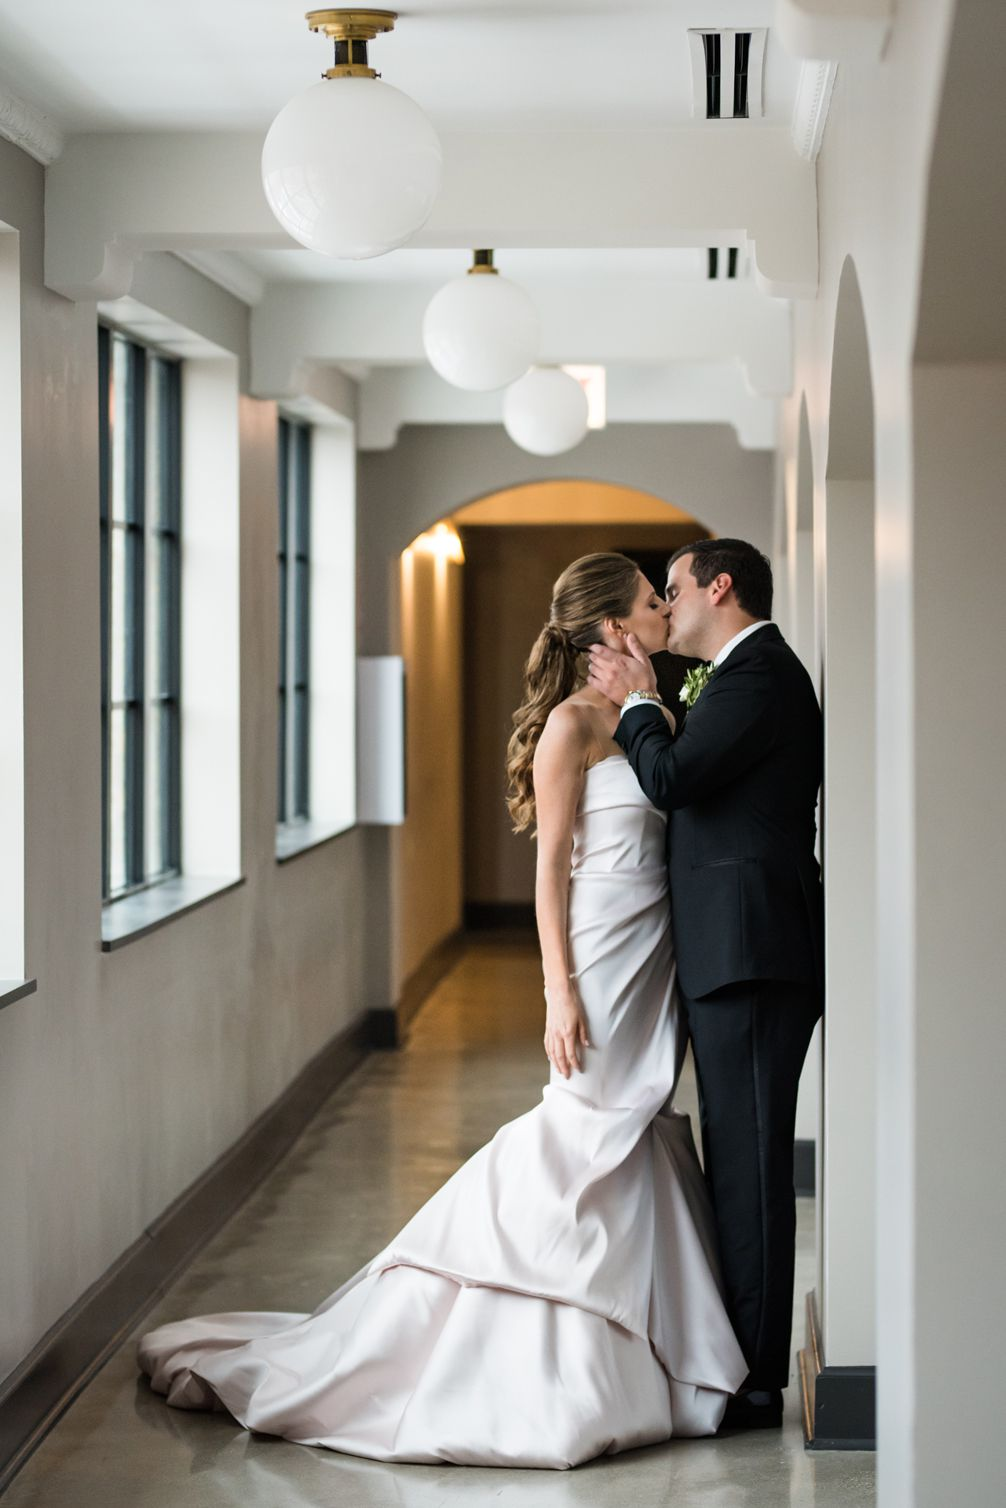 Bride and the groom share a kiss